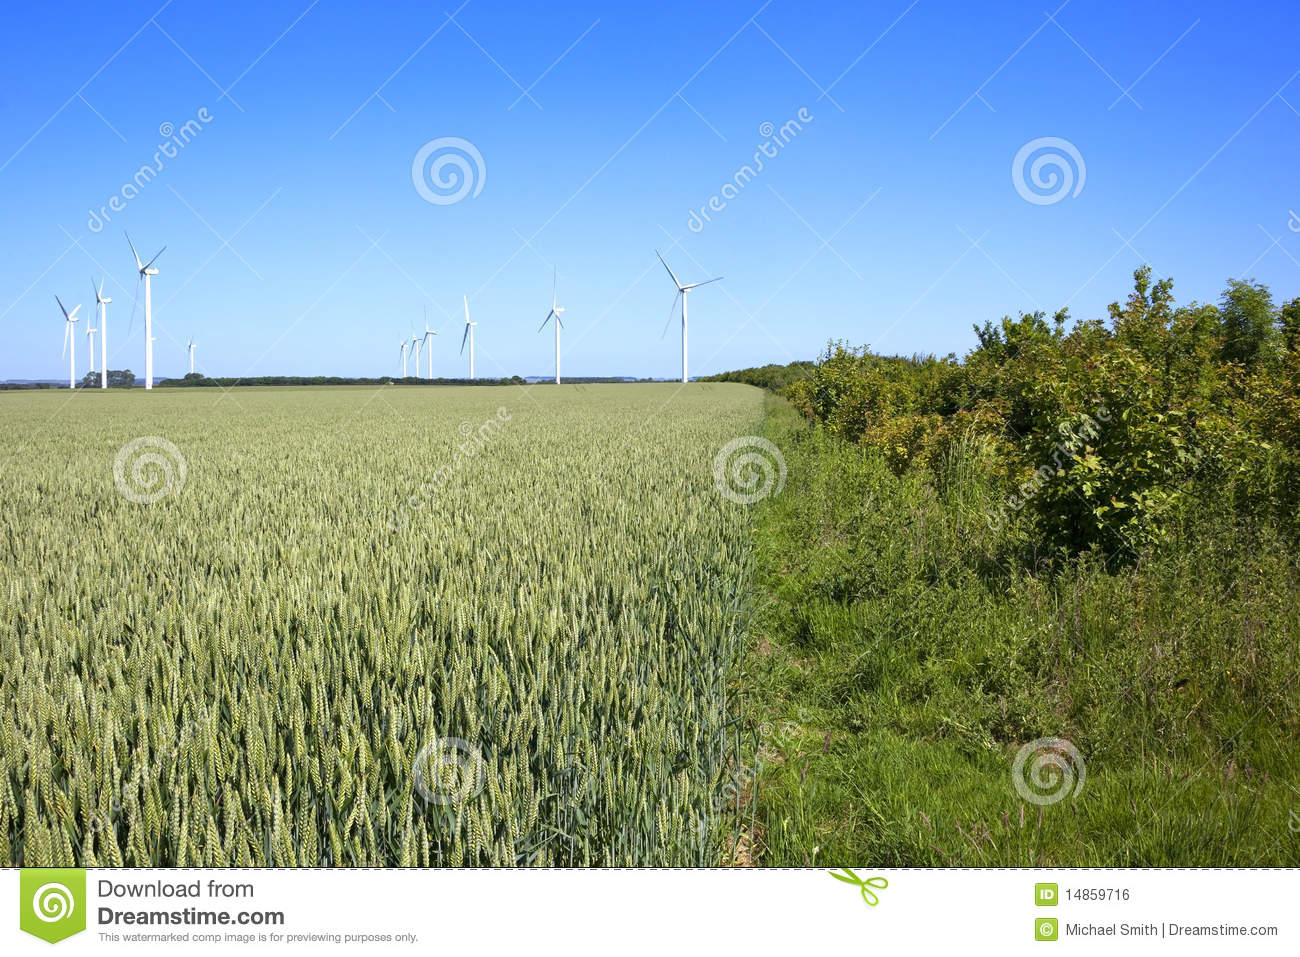 Wheat fields with wind turbines